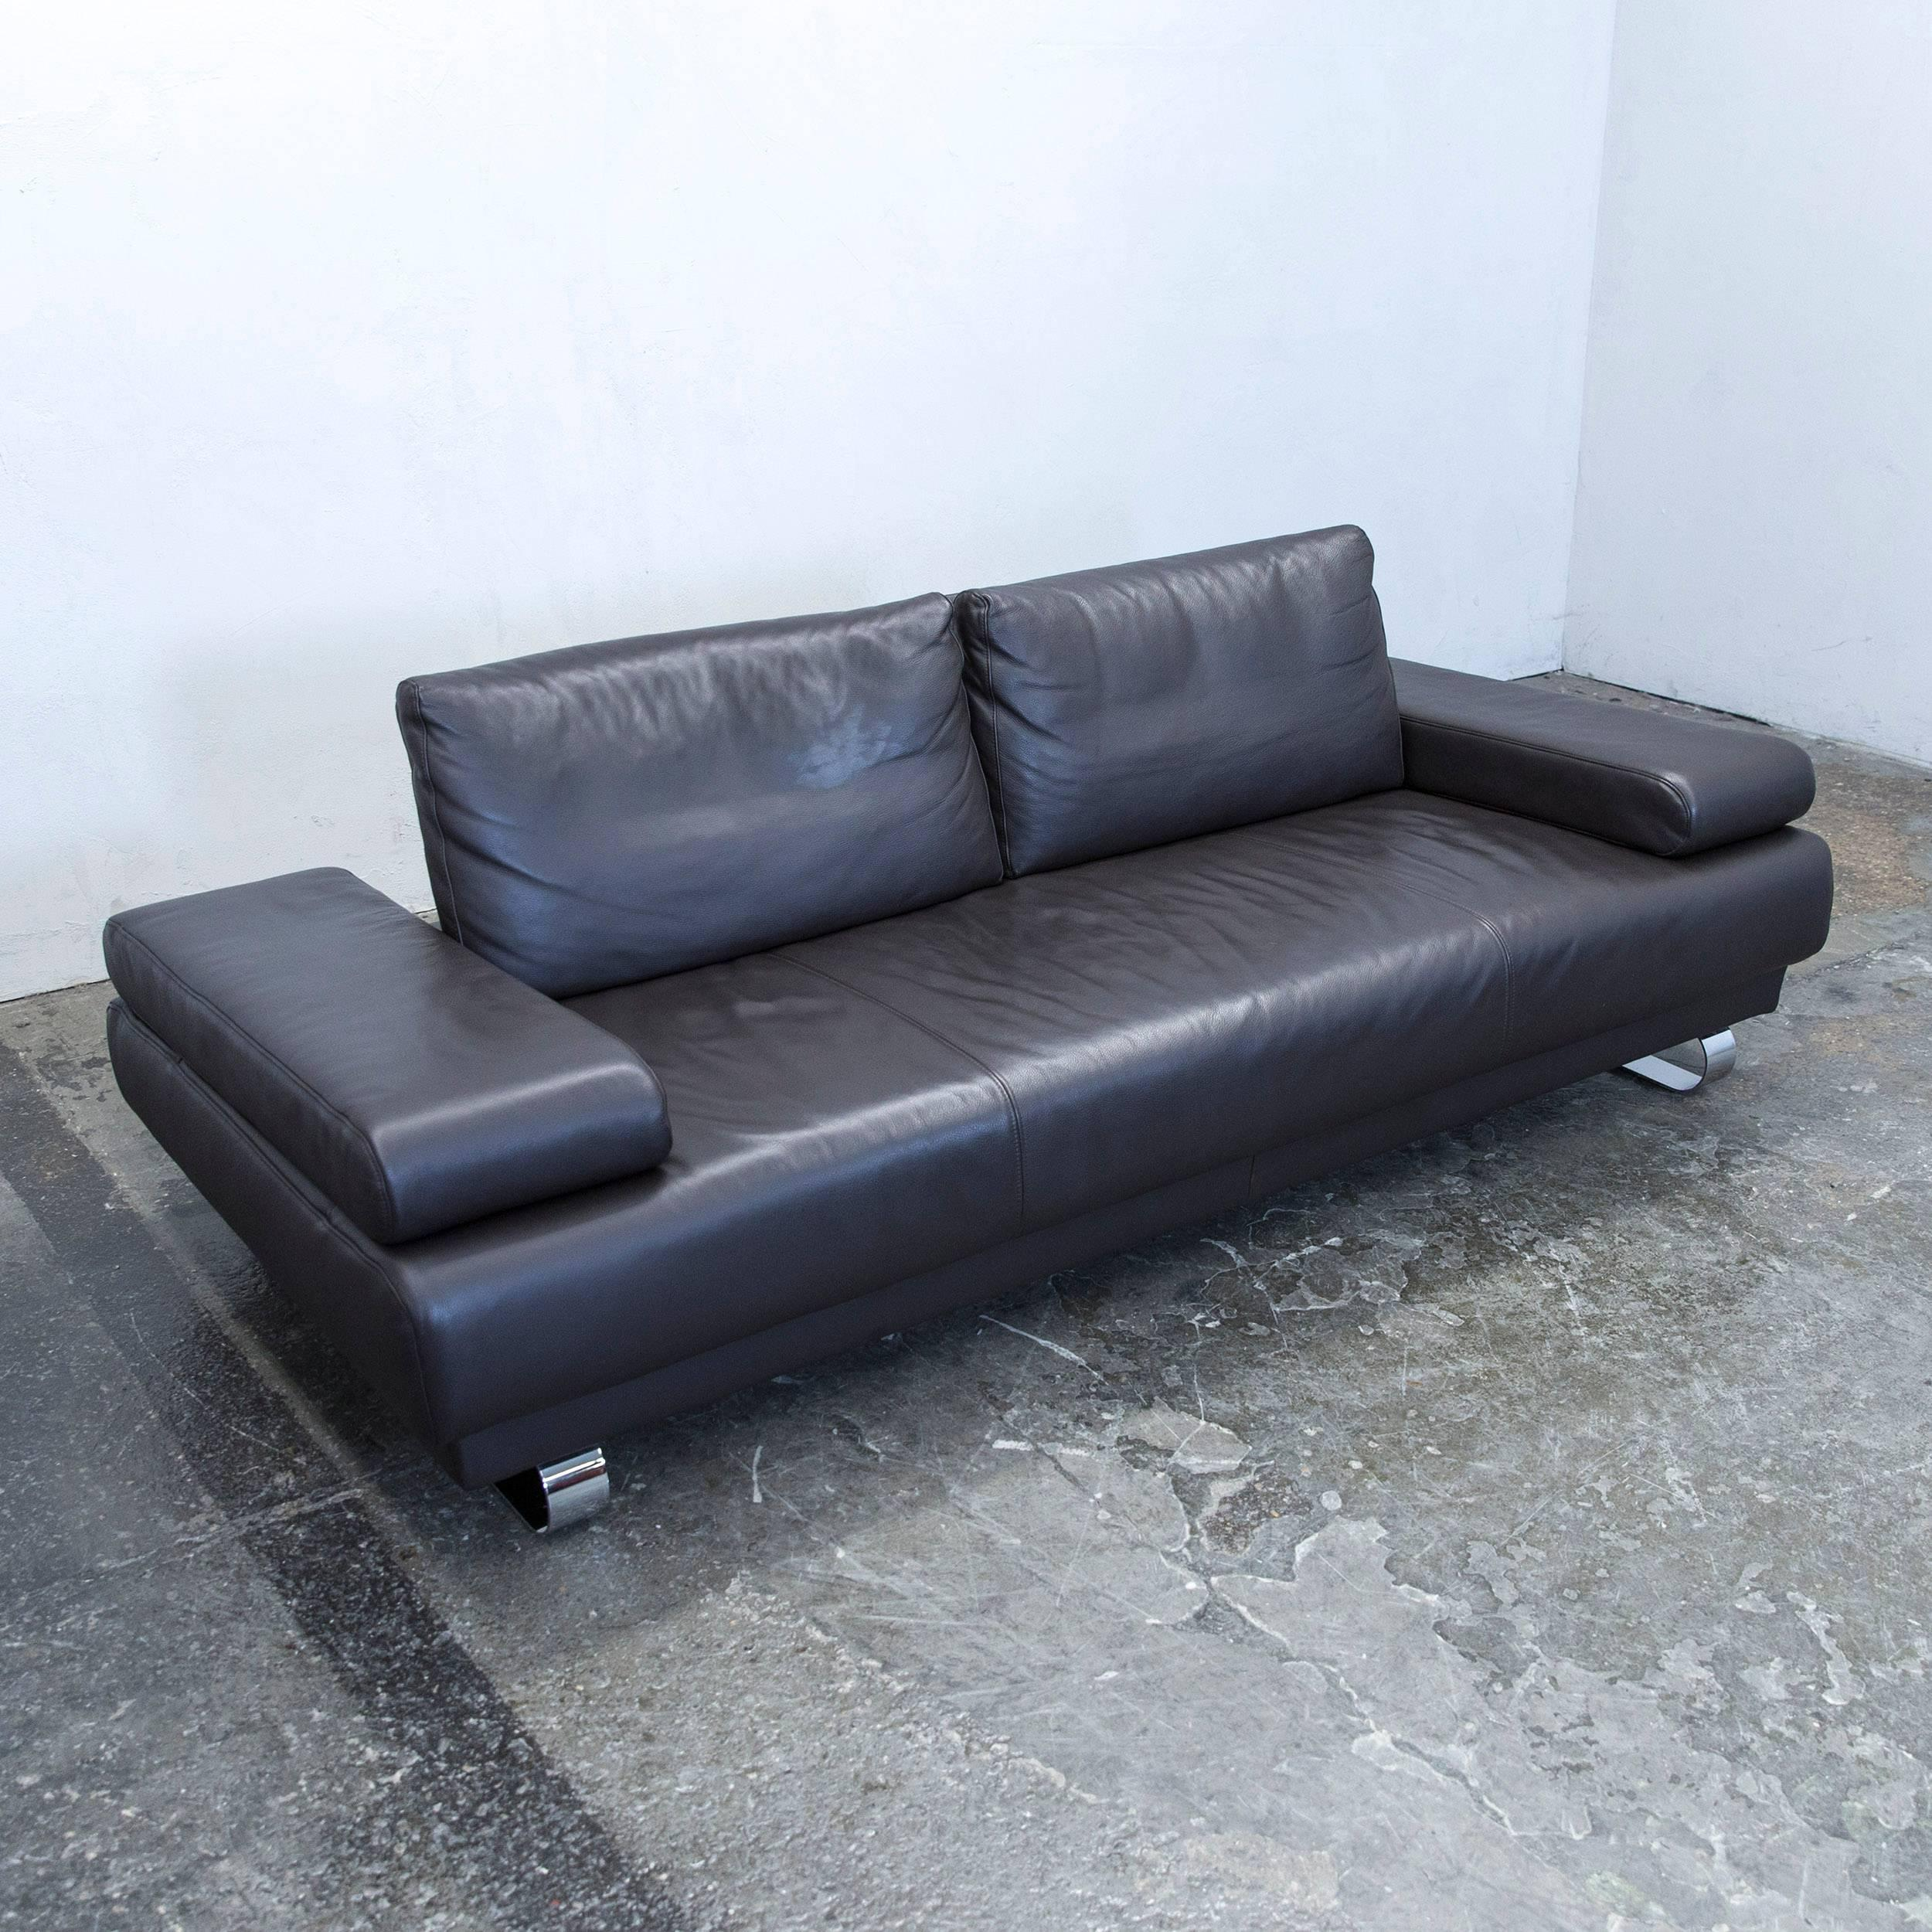 Couch Sessel Leder Gallery Of Relax Sessel Leder Best Of Fsm Ergo